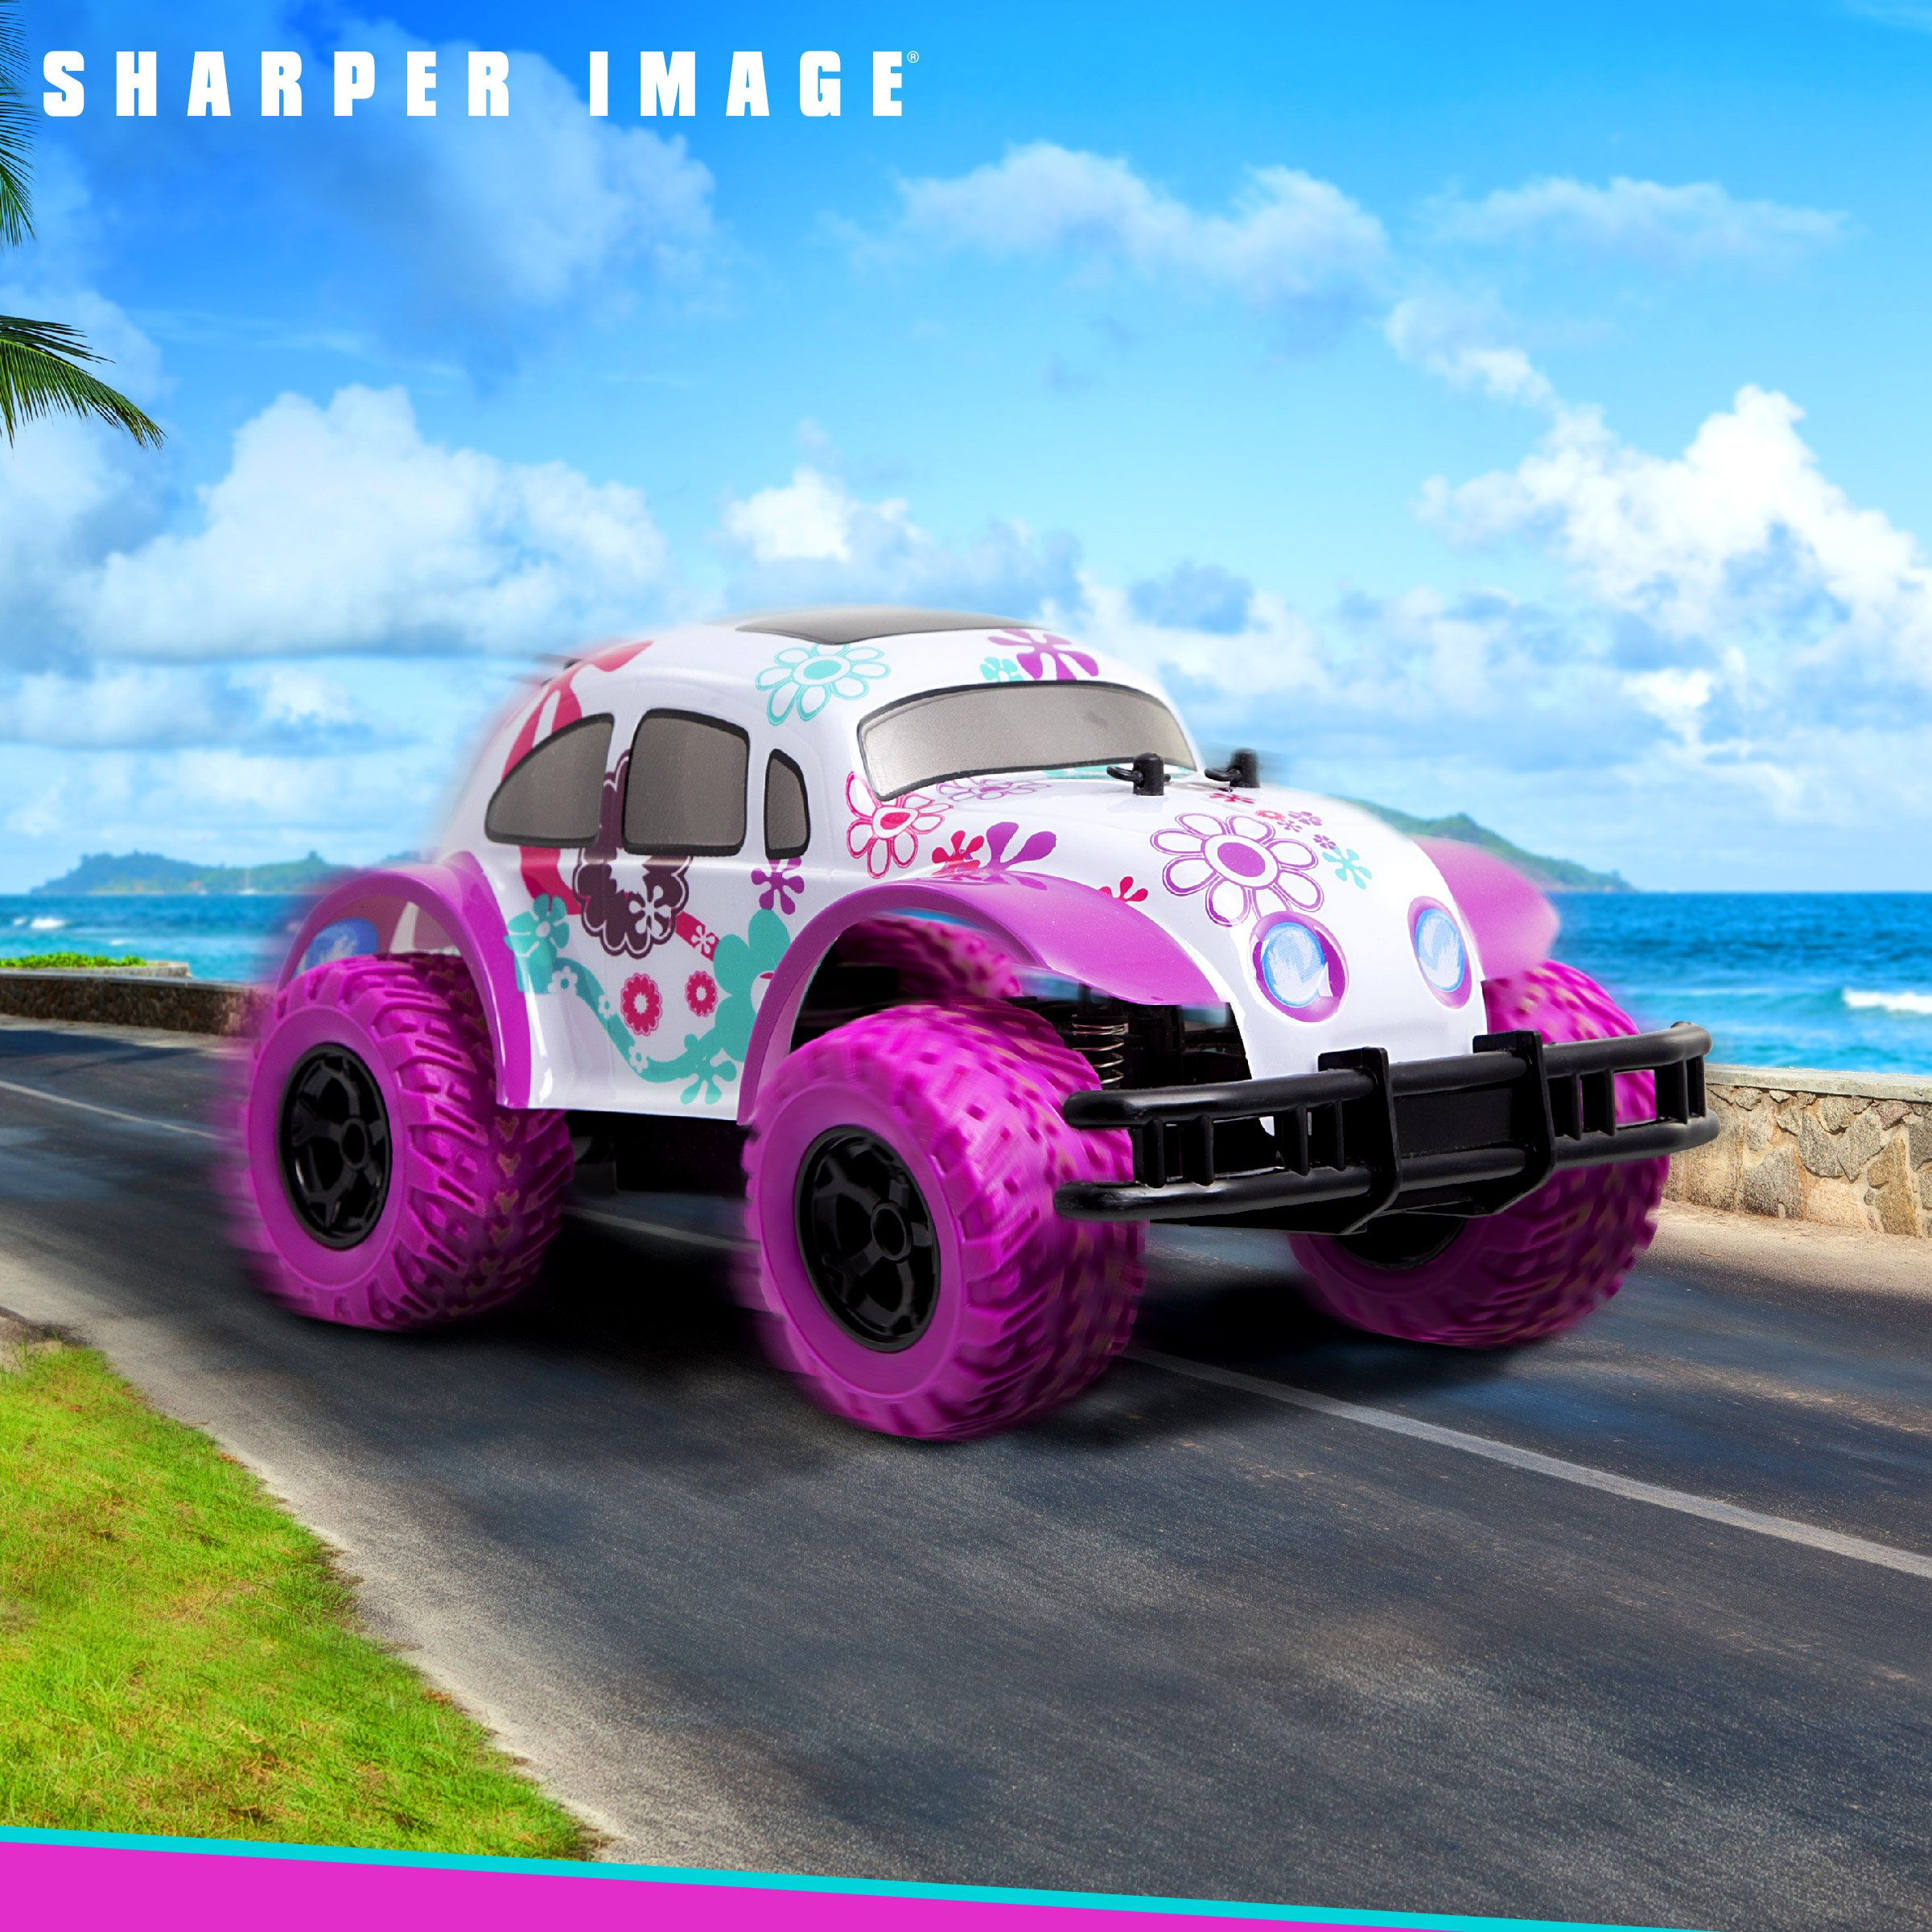 SHARPER IMAGE Pixie Cruiser Pink and Purple RC Remote Control Car Toy for Girls with Off-Road Grip Tires; Princess Style Big Buggy Crawler w/ Flowers Design and Shocks, Race Up to 5 MPH, Ages 6 Year + by Sharper Image (Image #3)